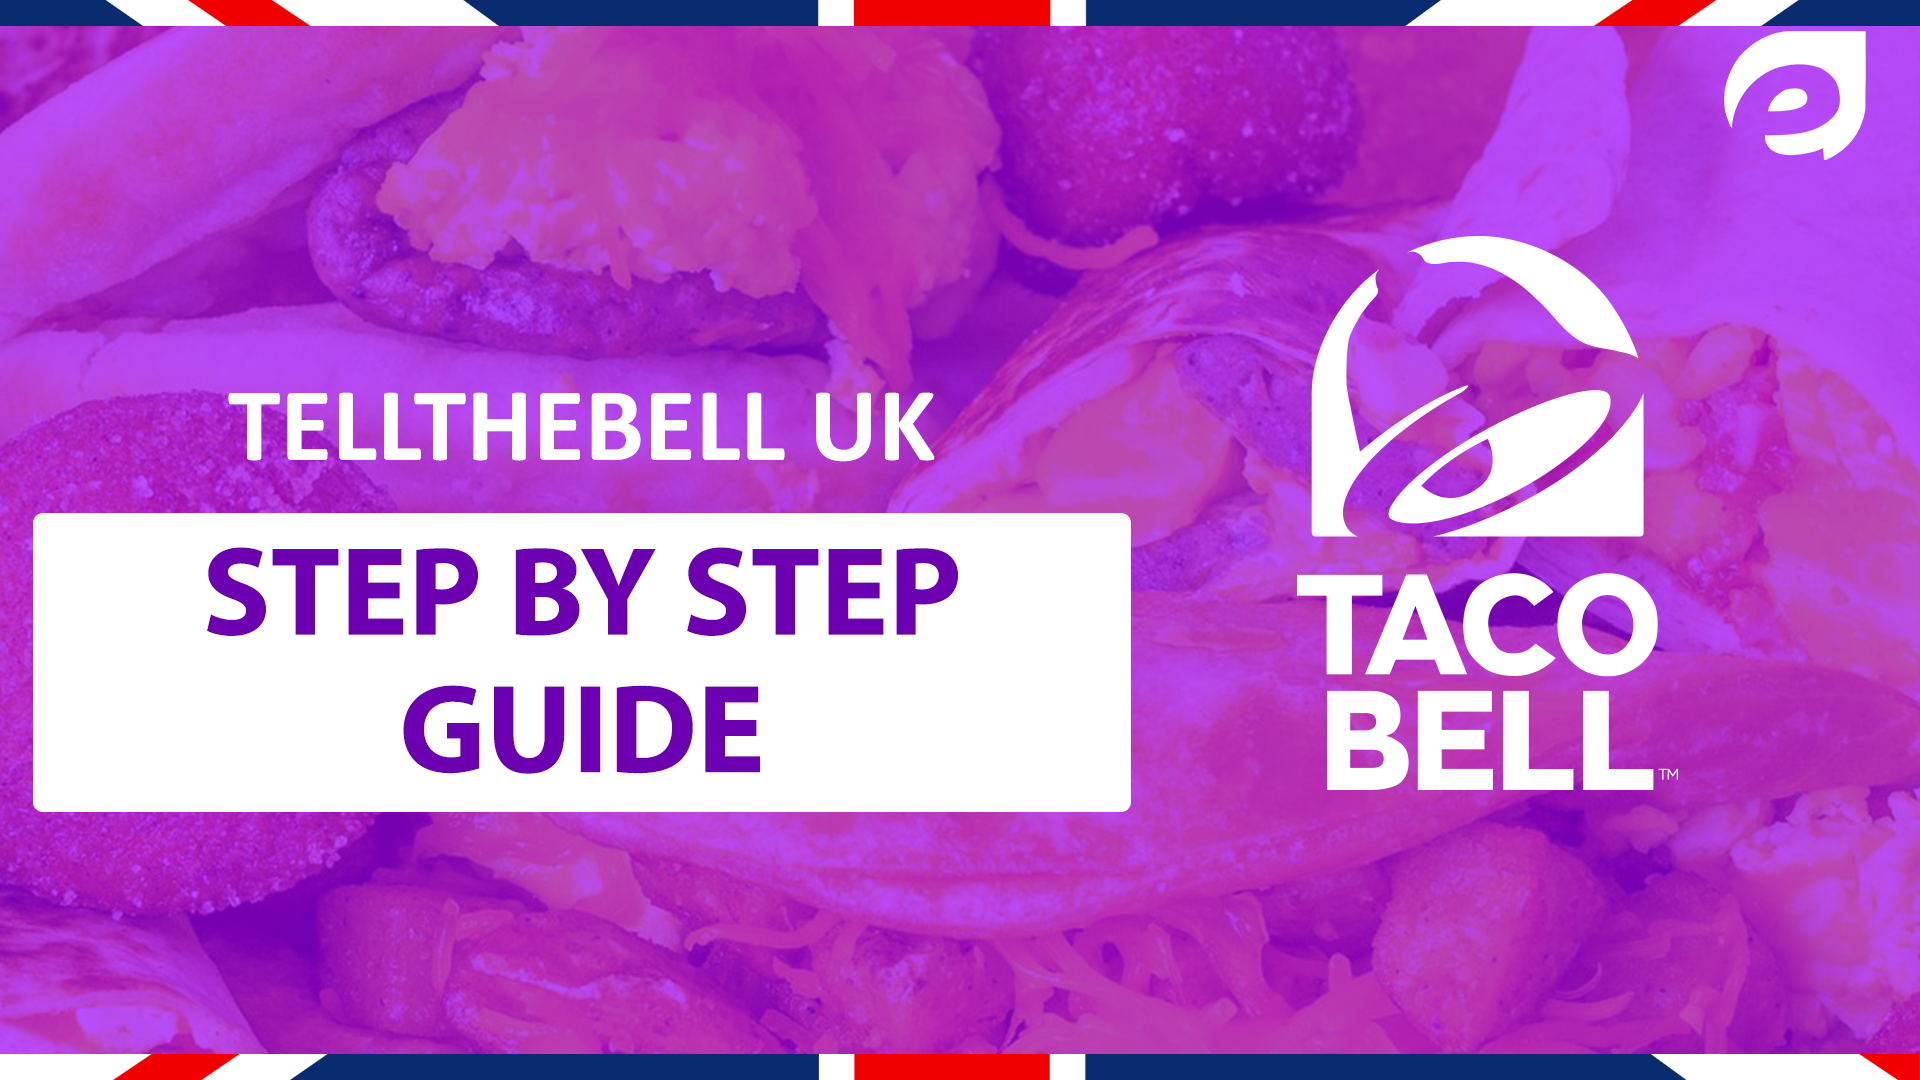 tell the bell uk - step by step guide